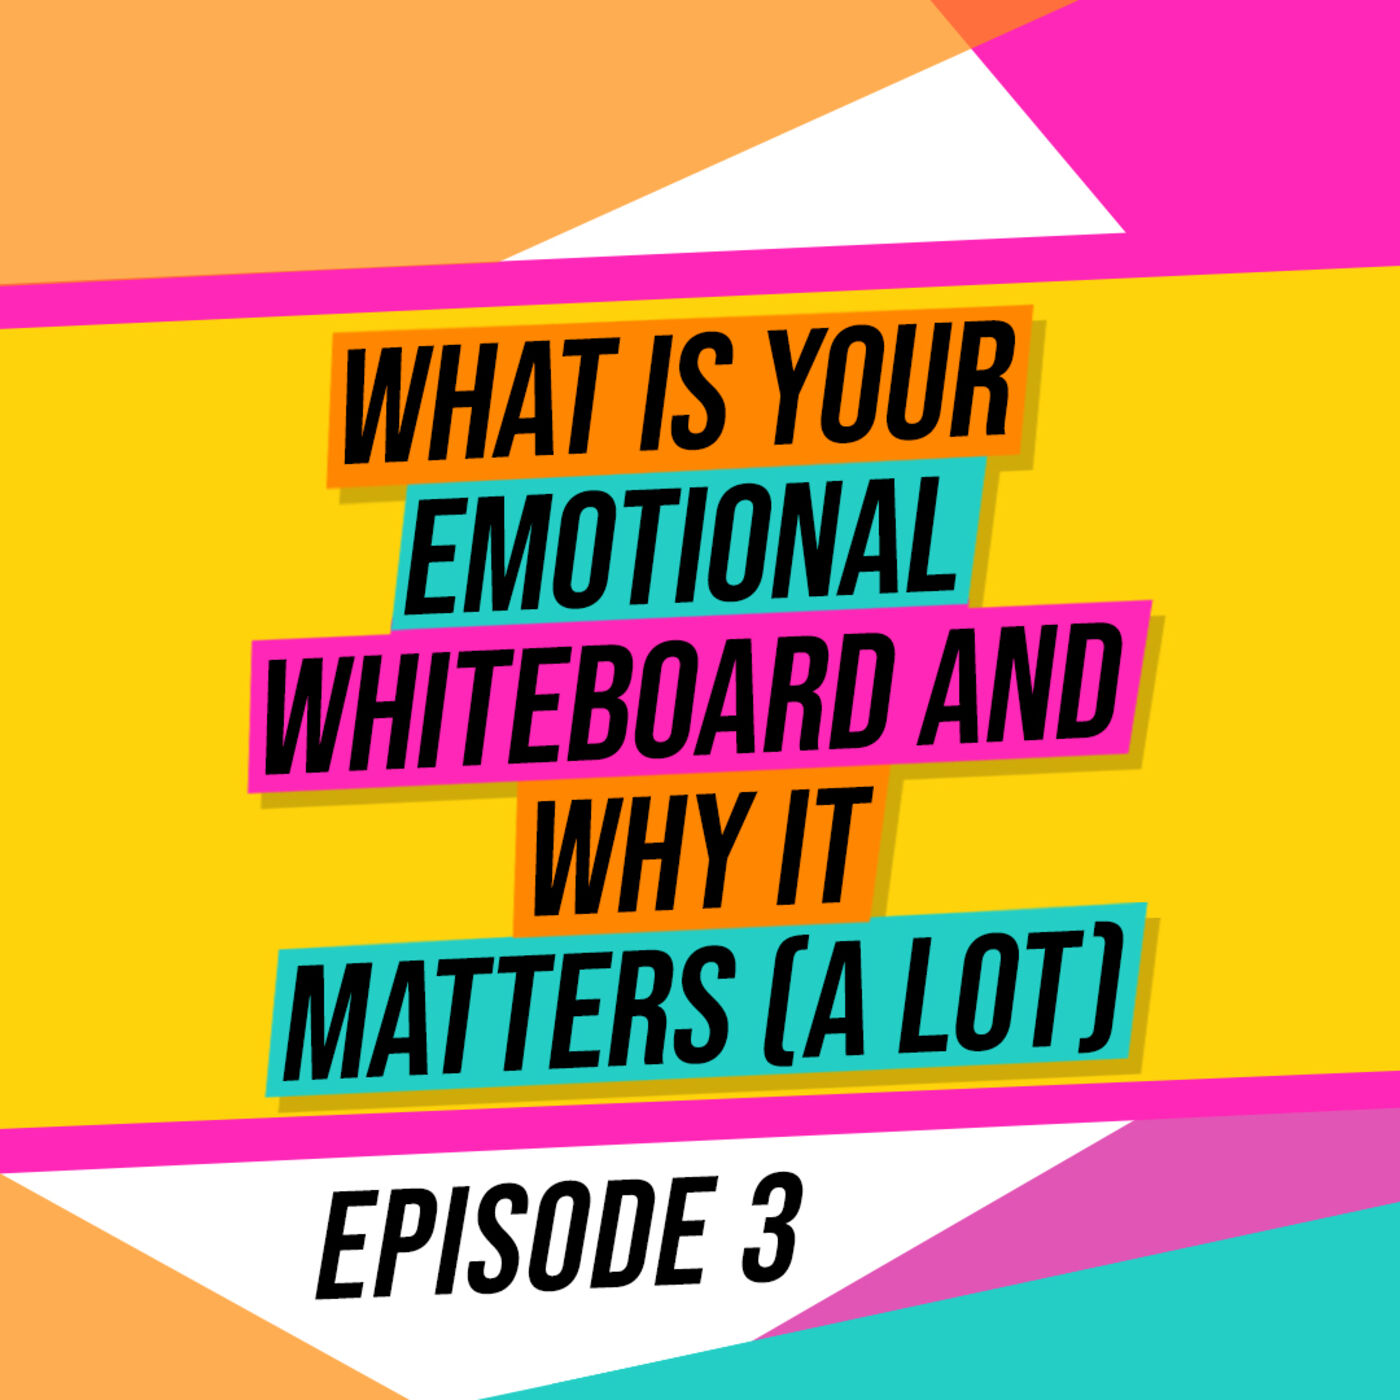 What is your Emotional Whiteboard and why does it matter (a lot)?